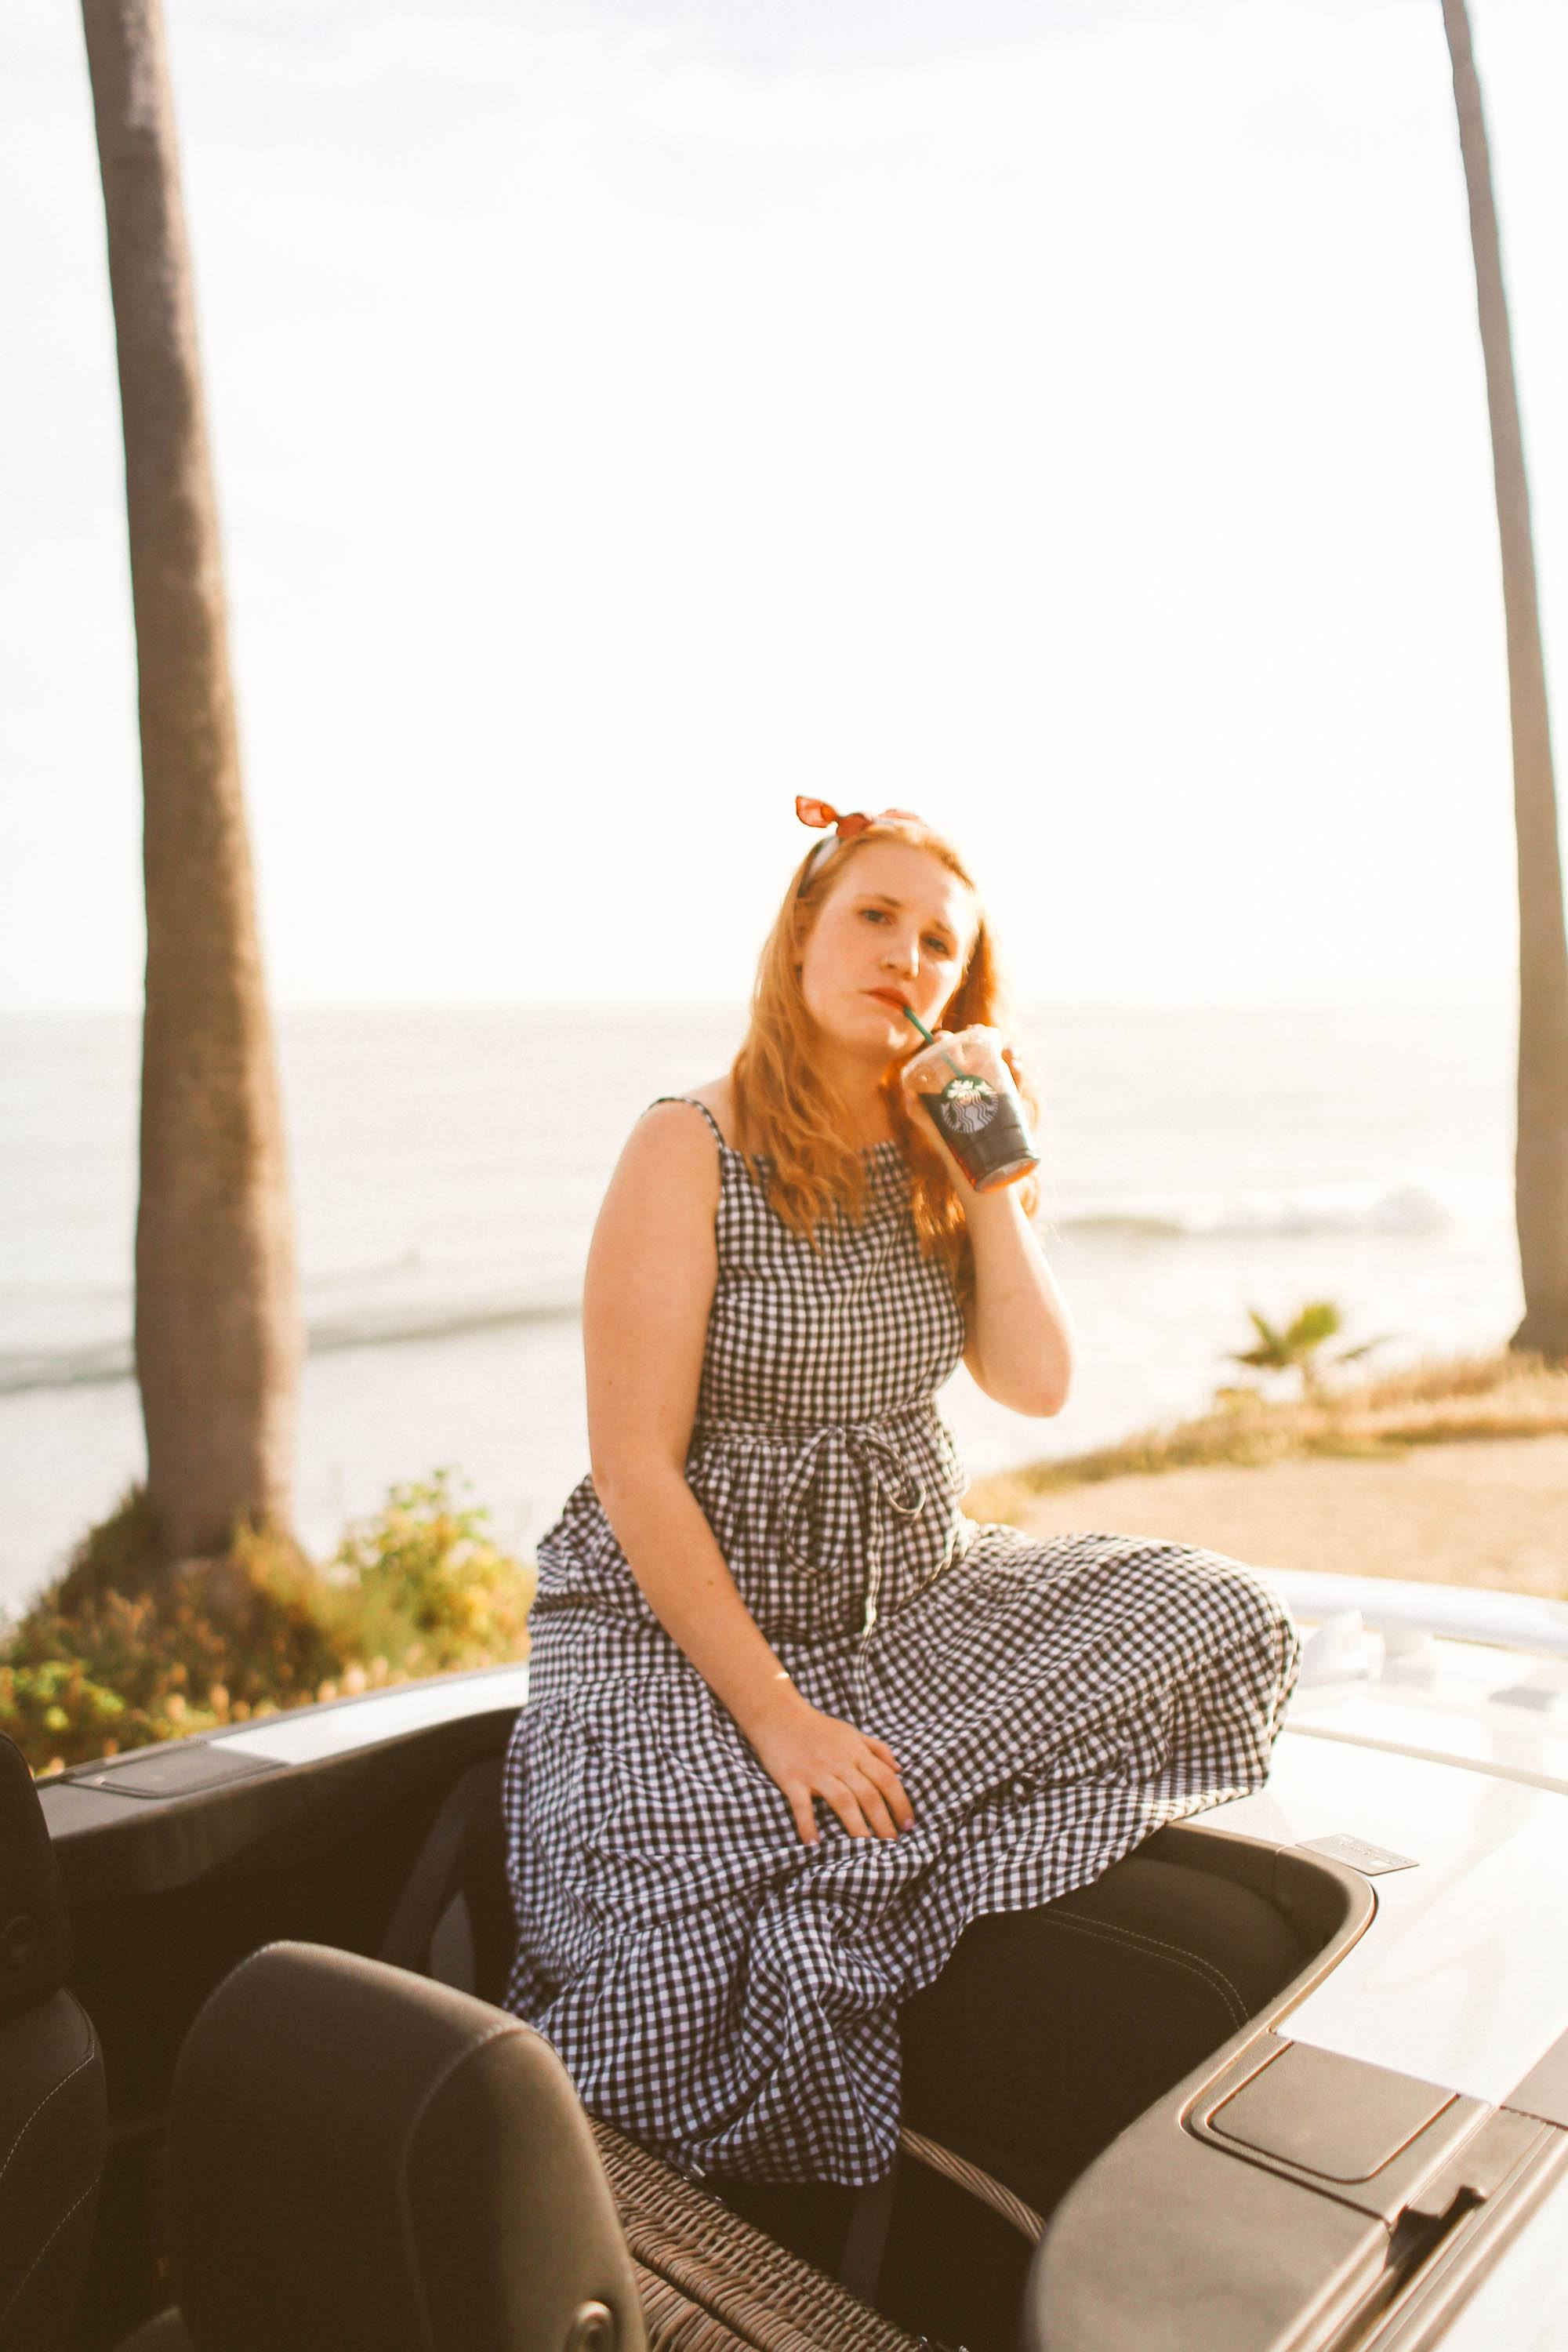 Woman in black and white gingham dress sitting on convertible drinking starbucks